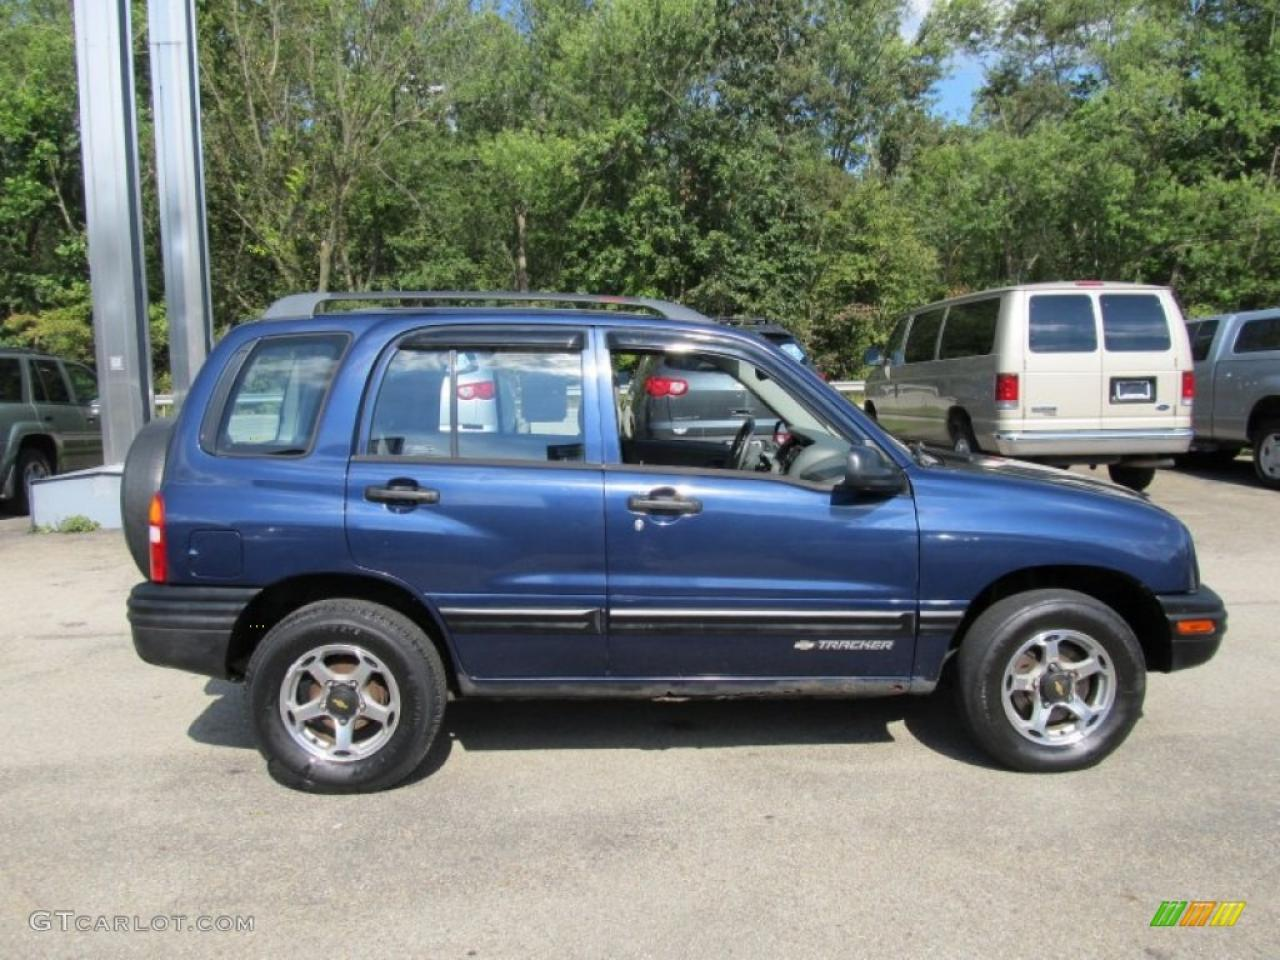 All Chevy 2001 Tracker 2000 Chevrolet Information And Photos Zombiedrive